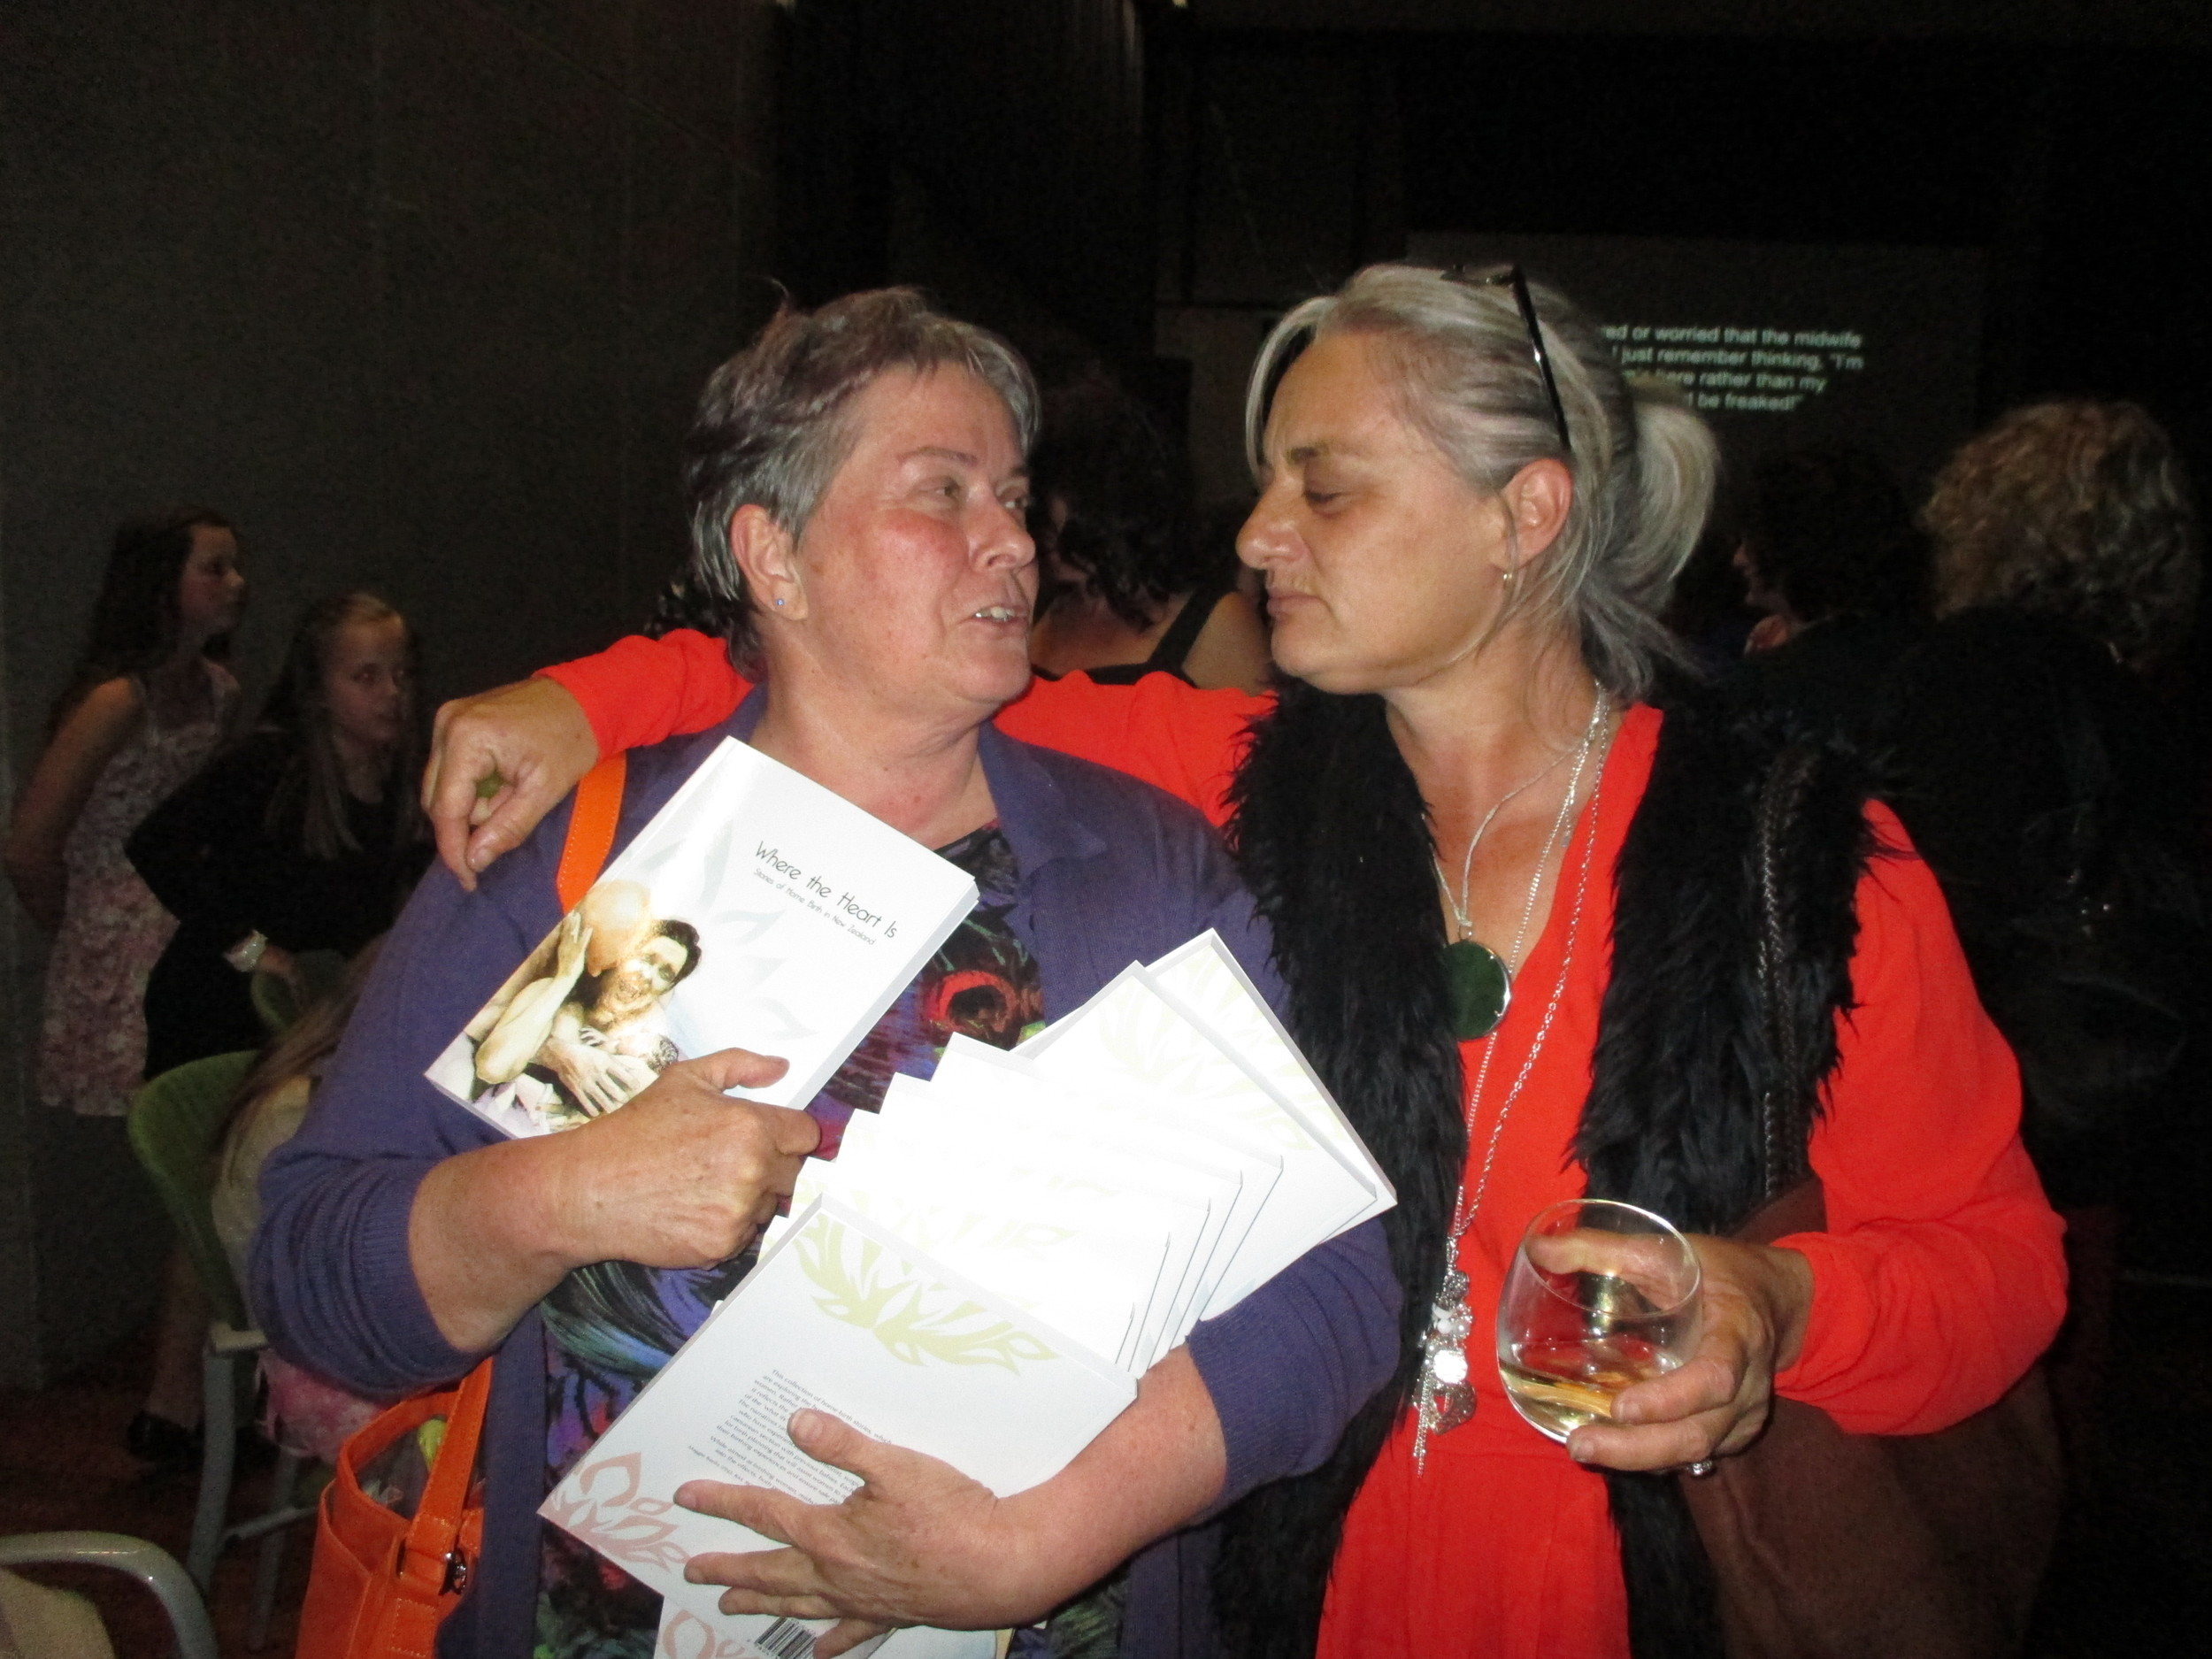 Two fabulous home birth midwives, Jenny and Joanne. Jenny got a bit carried away with her book purchases on the night!